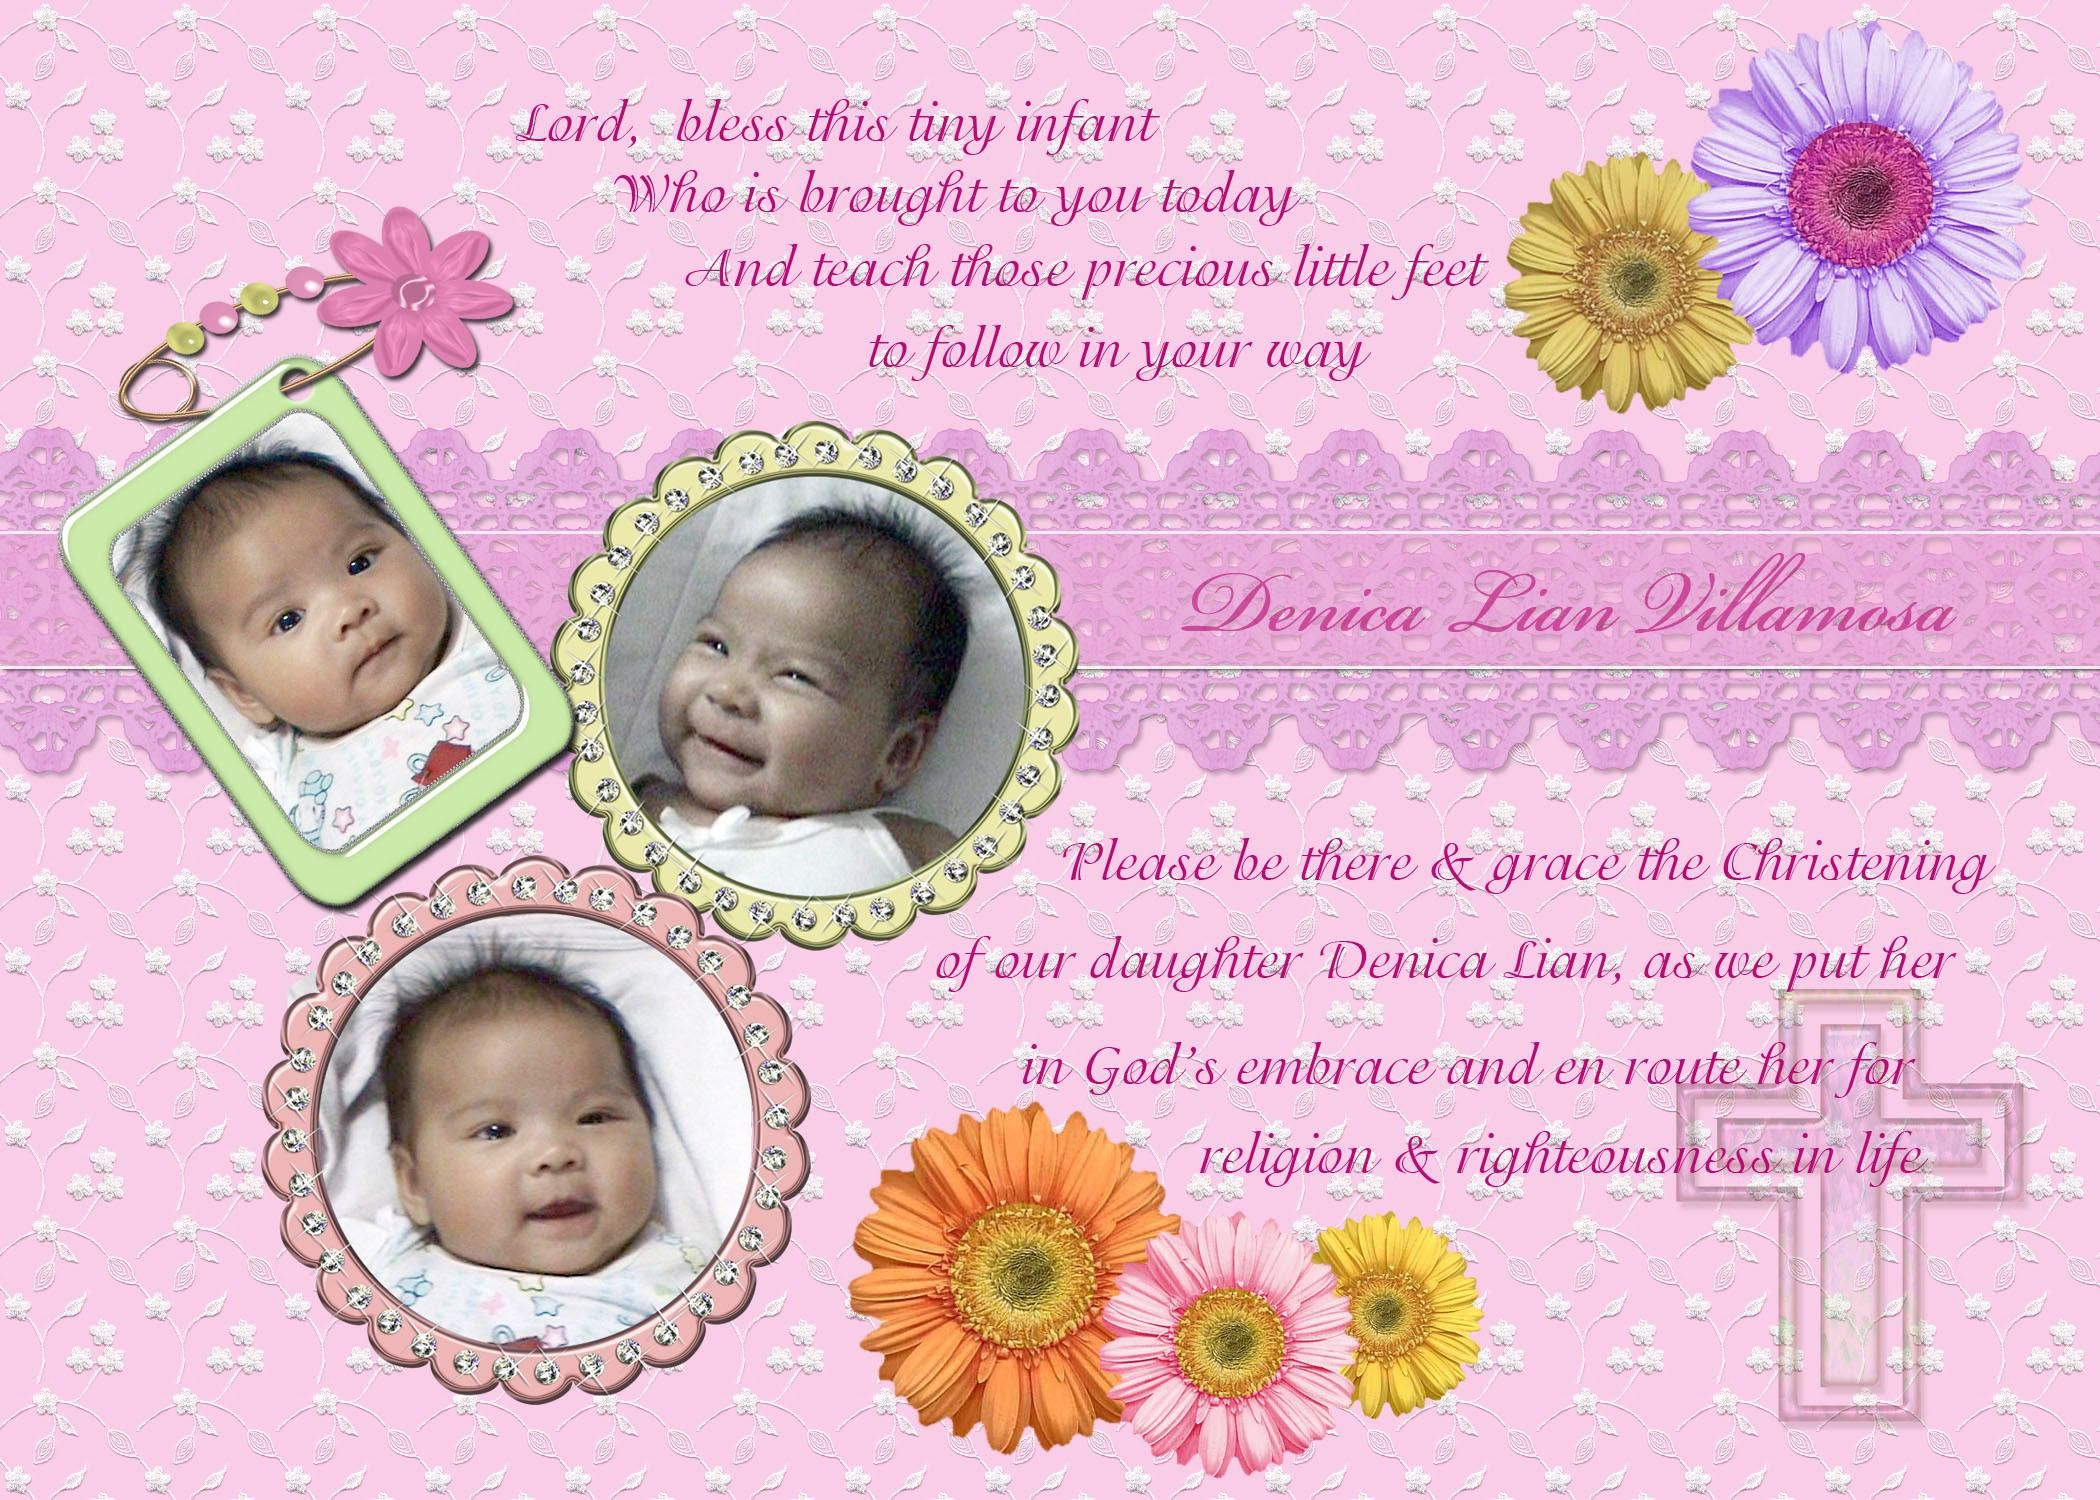 Christening Invitation Card Maker Christening Invitation Card Maker Software Superb In Baptism Invitations Girl Christening Invitations Baptism Invitations